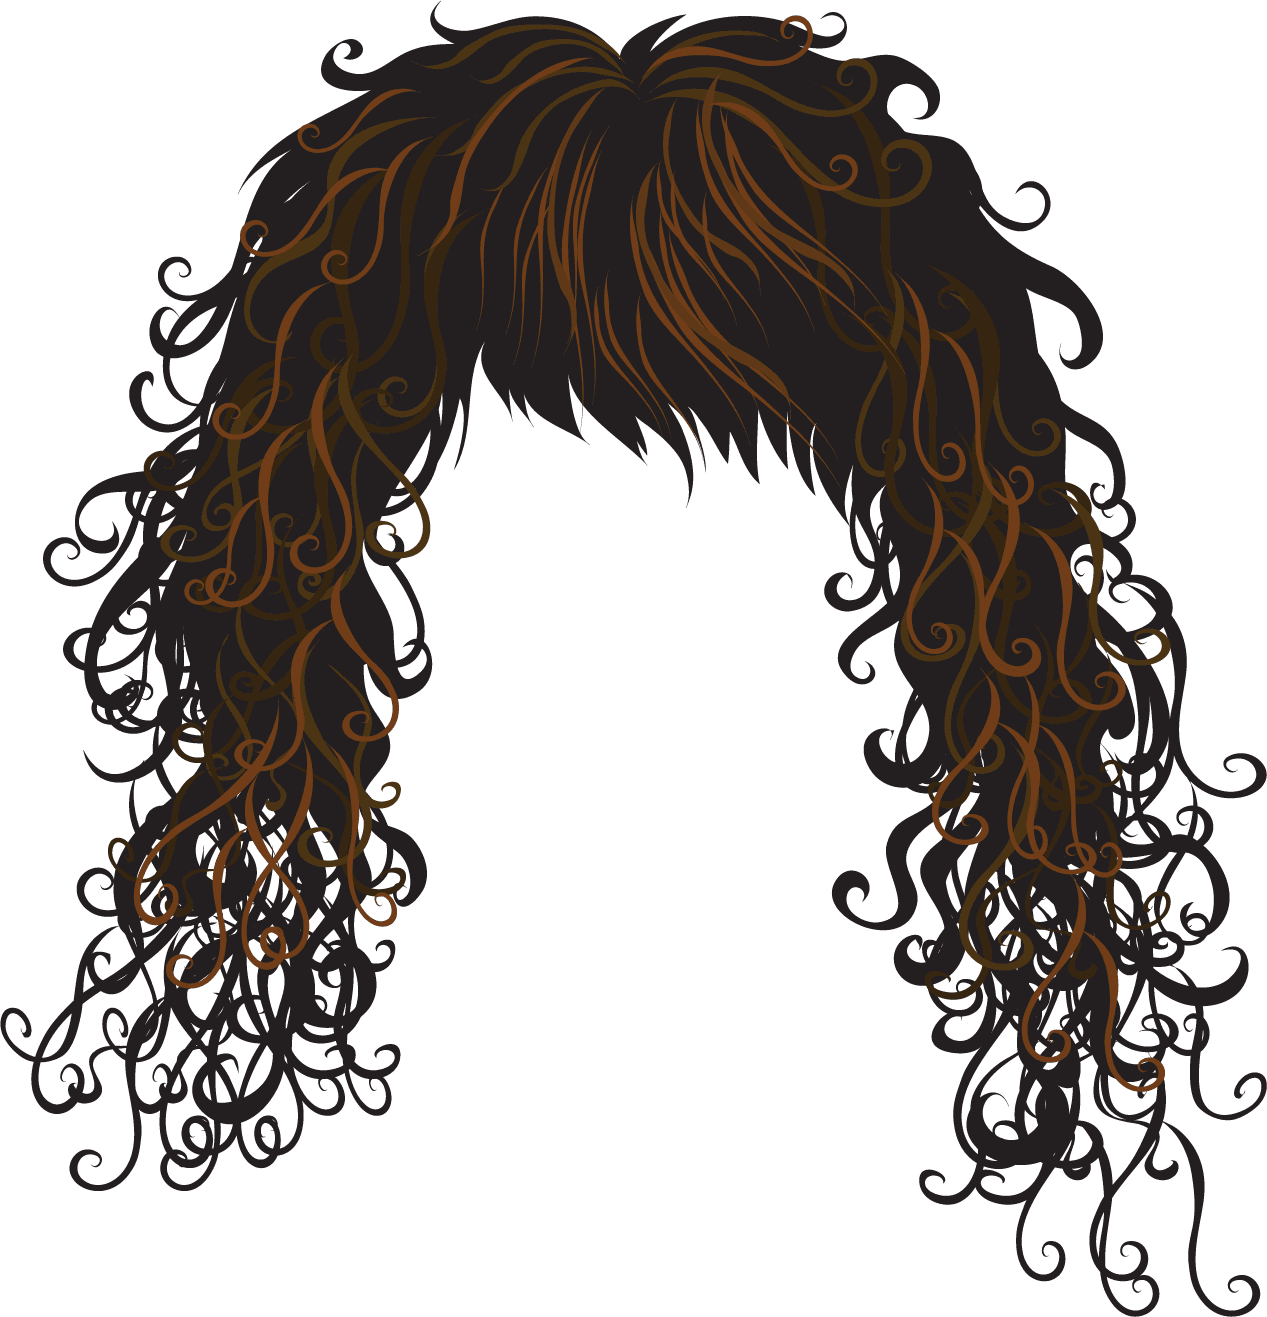 Free Crazy Hair Cliparts, Download Free Clip Art, Free Clip Art on.